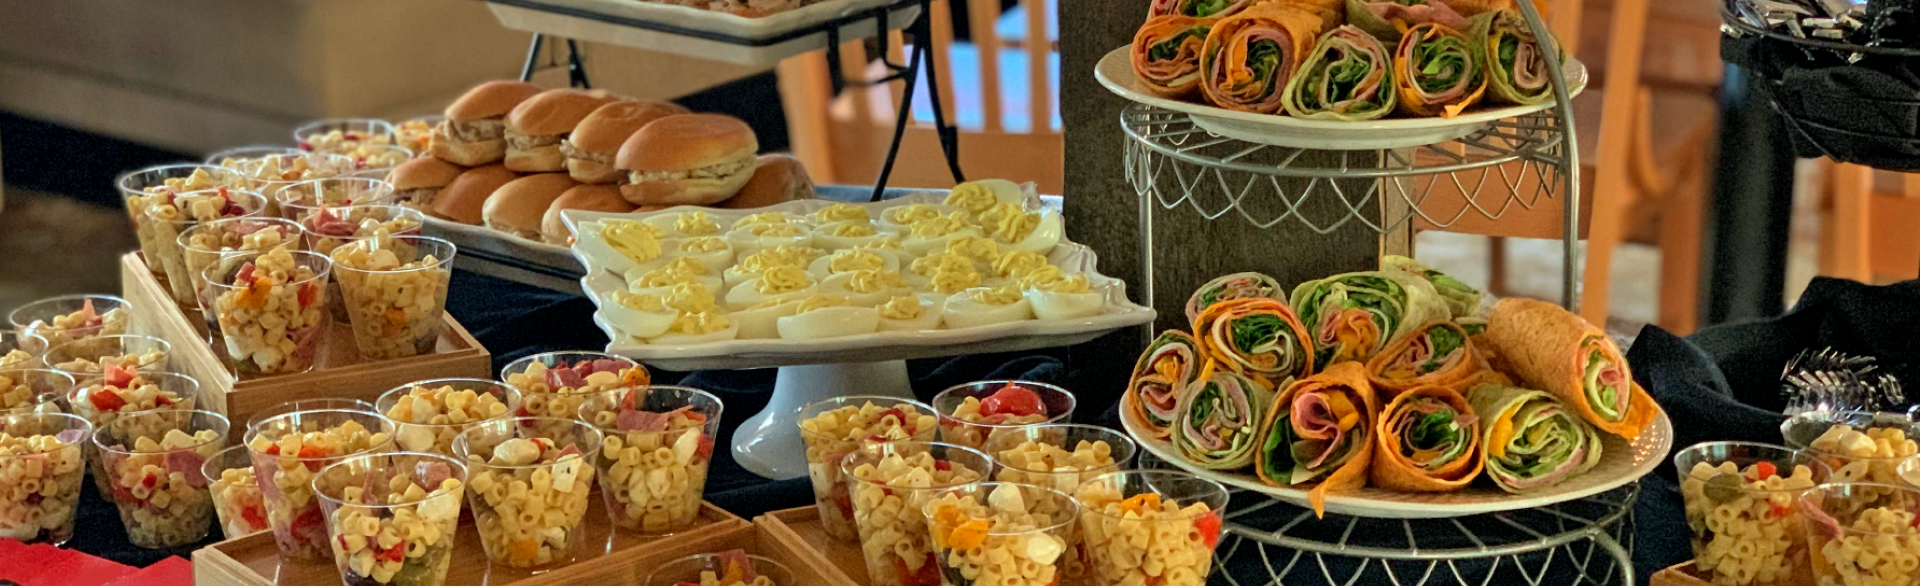 Catering from The Original Gourmet Brunch on Cape Cod